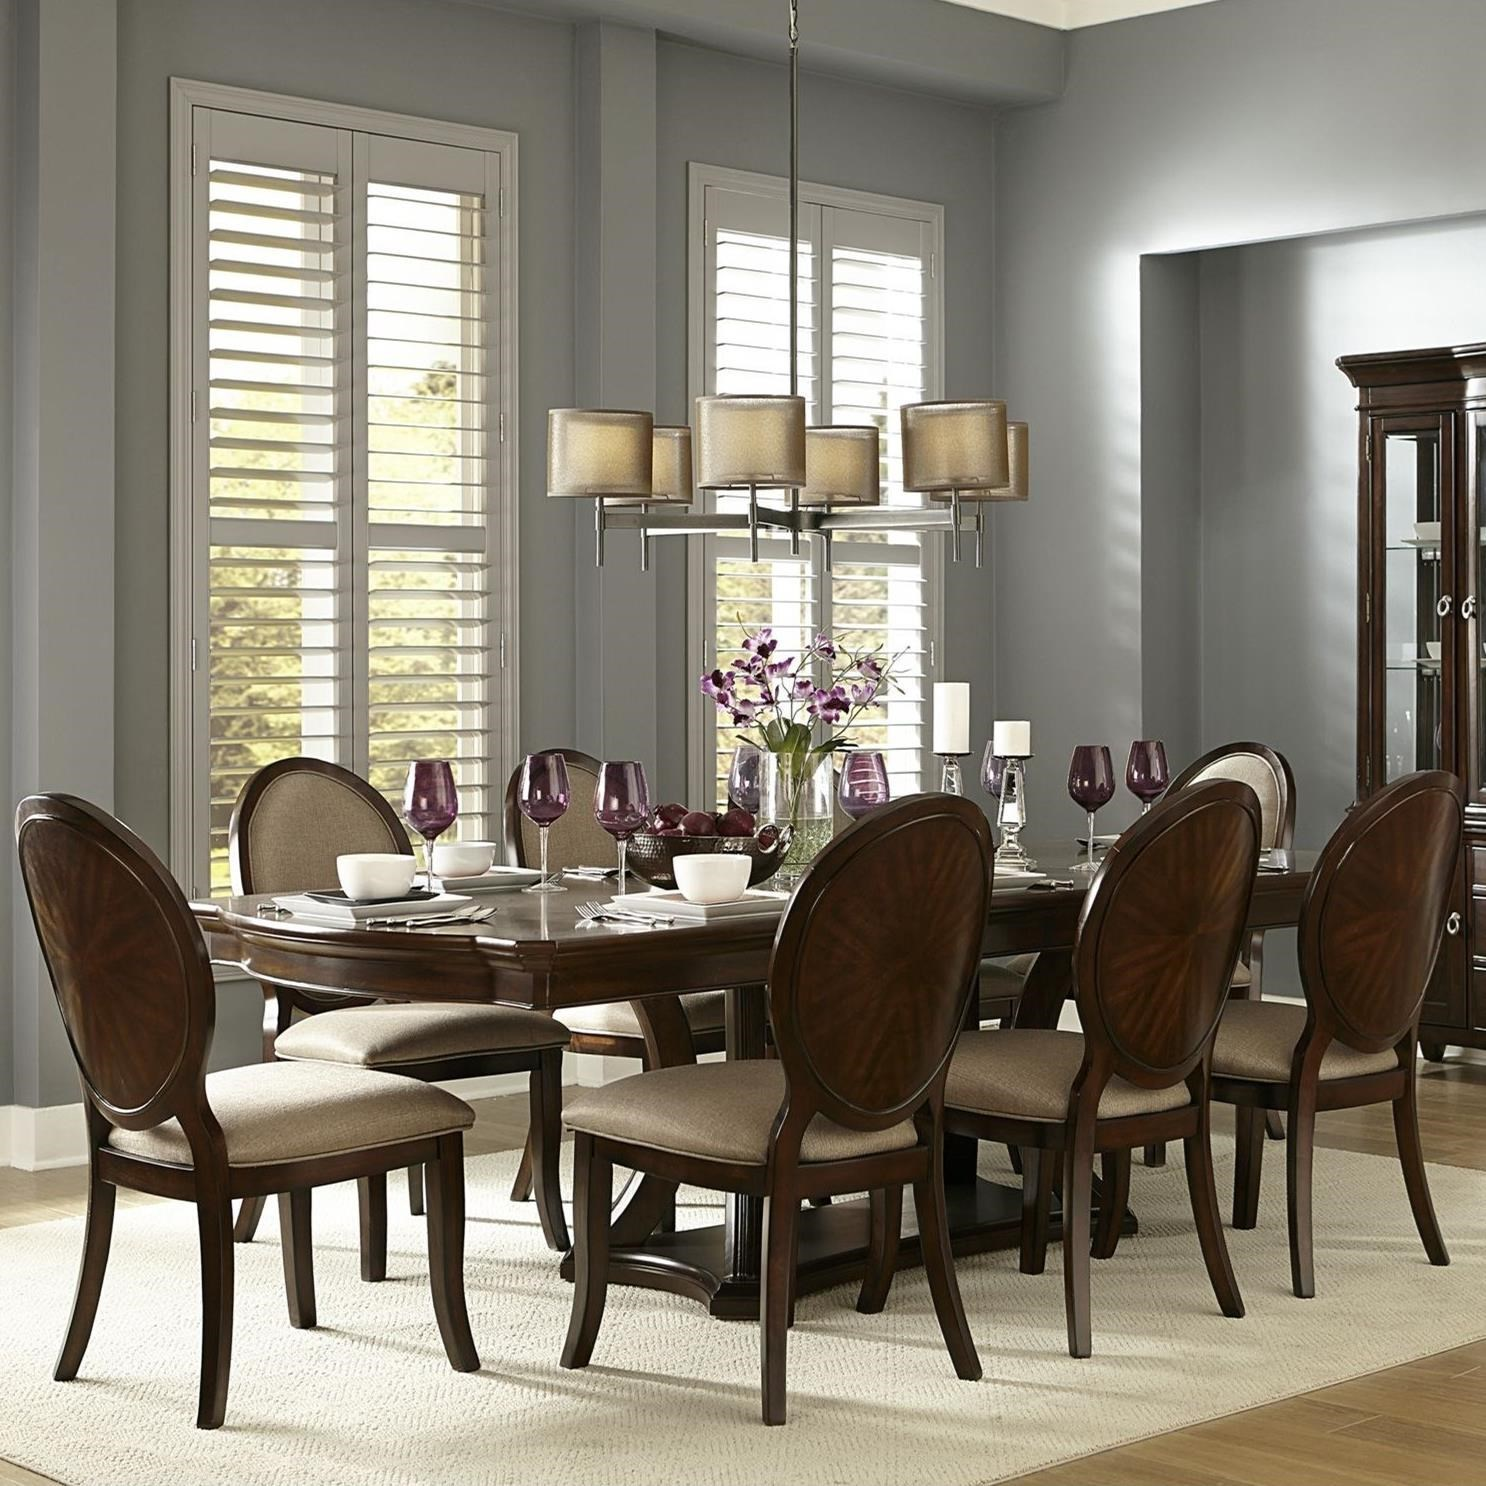 Dining Room Chair Sets Delavan Transitional Dining Table And Chair Set By Homelegance At Value City Furniture